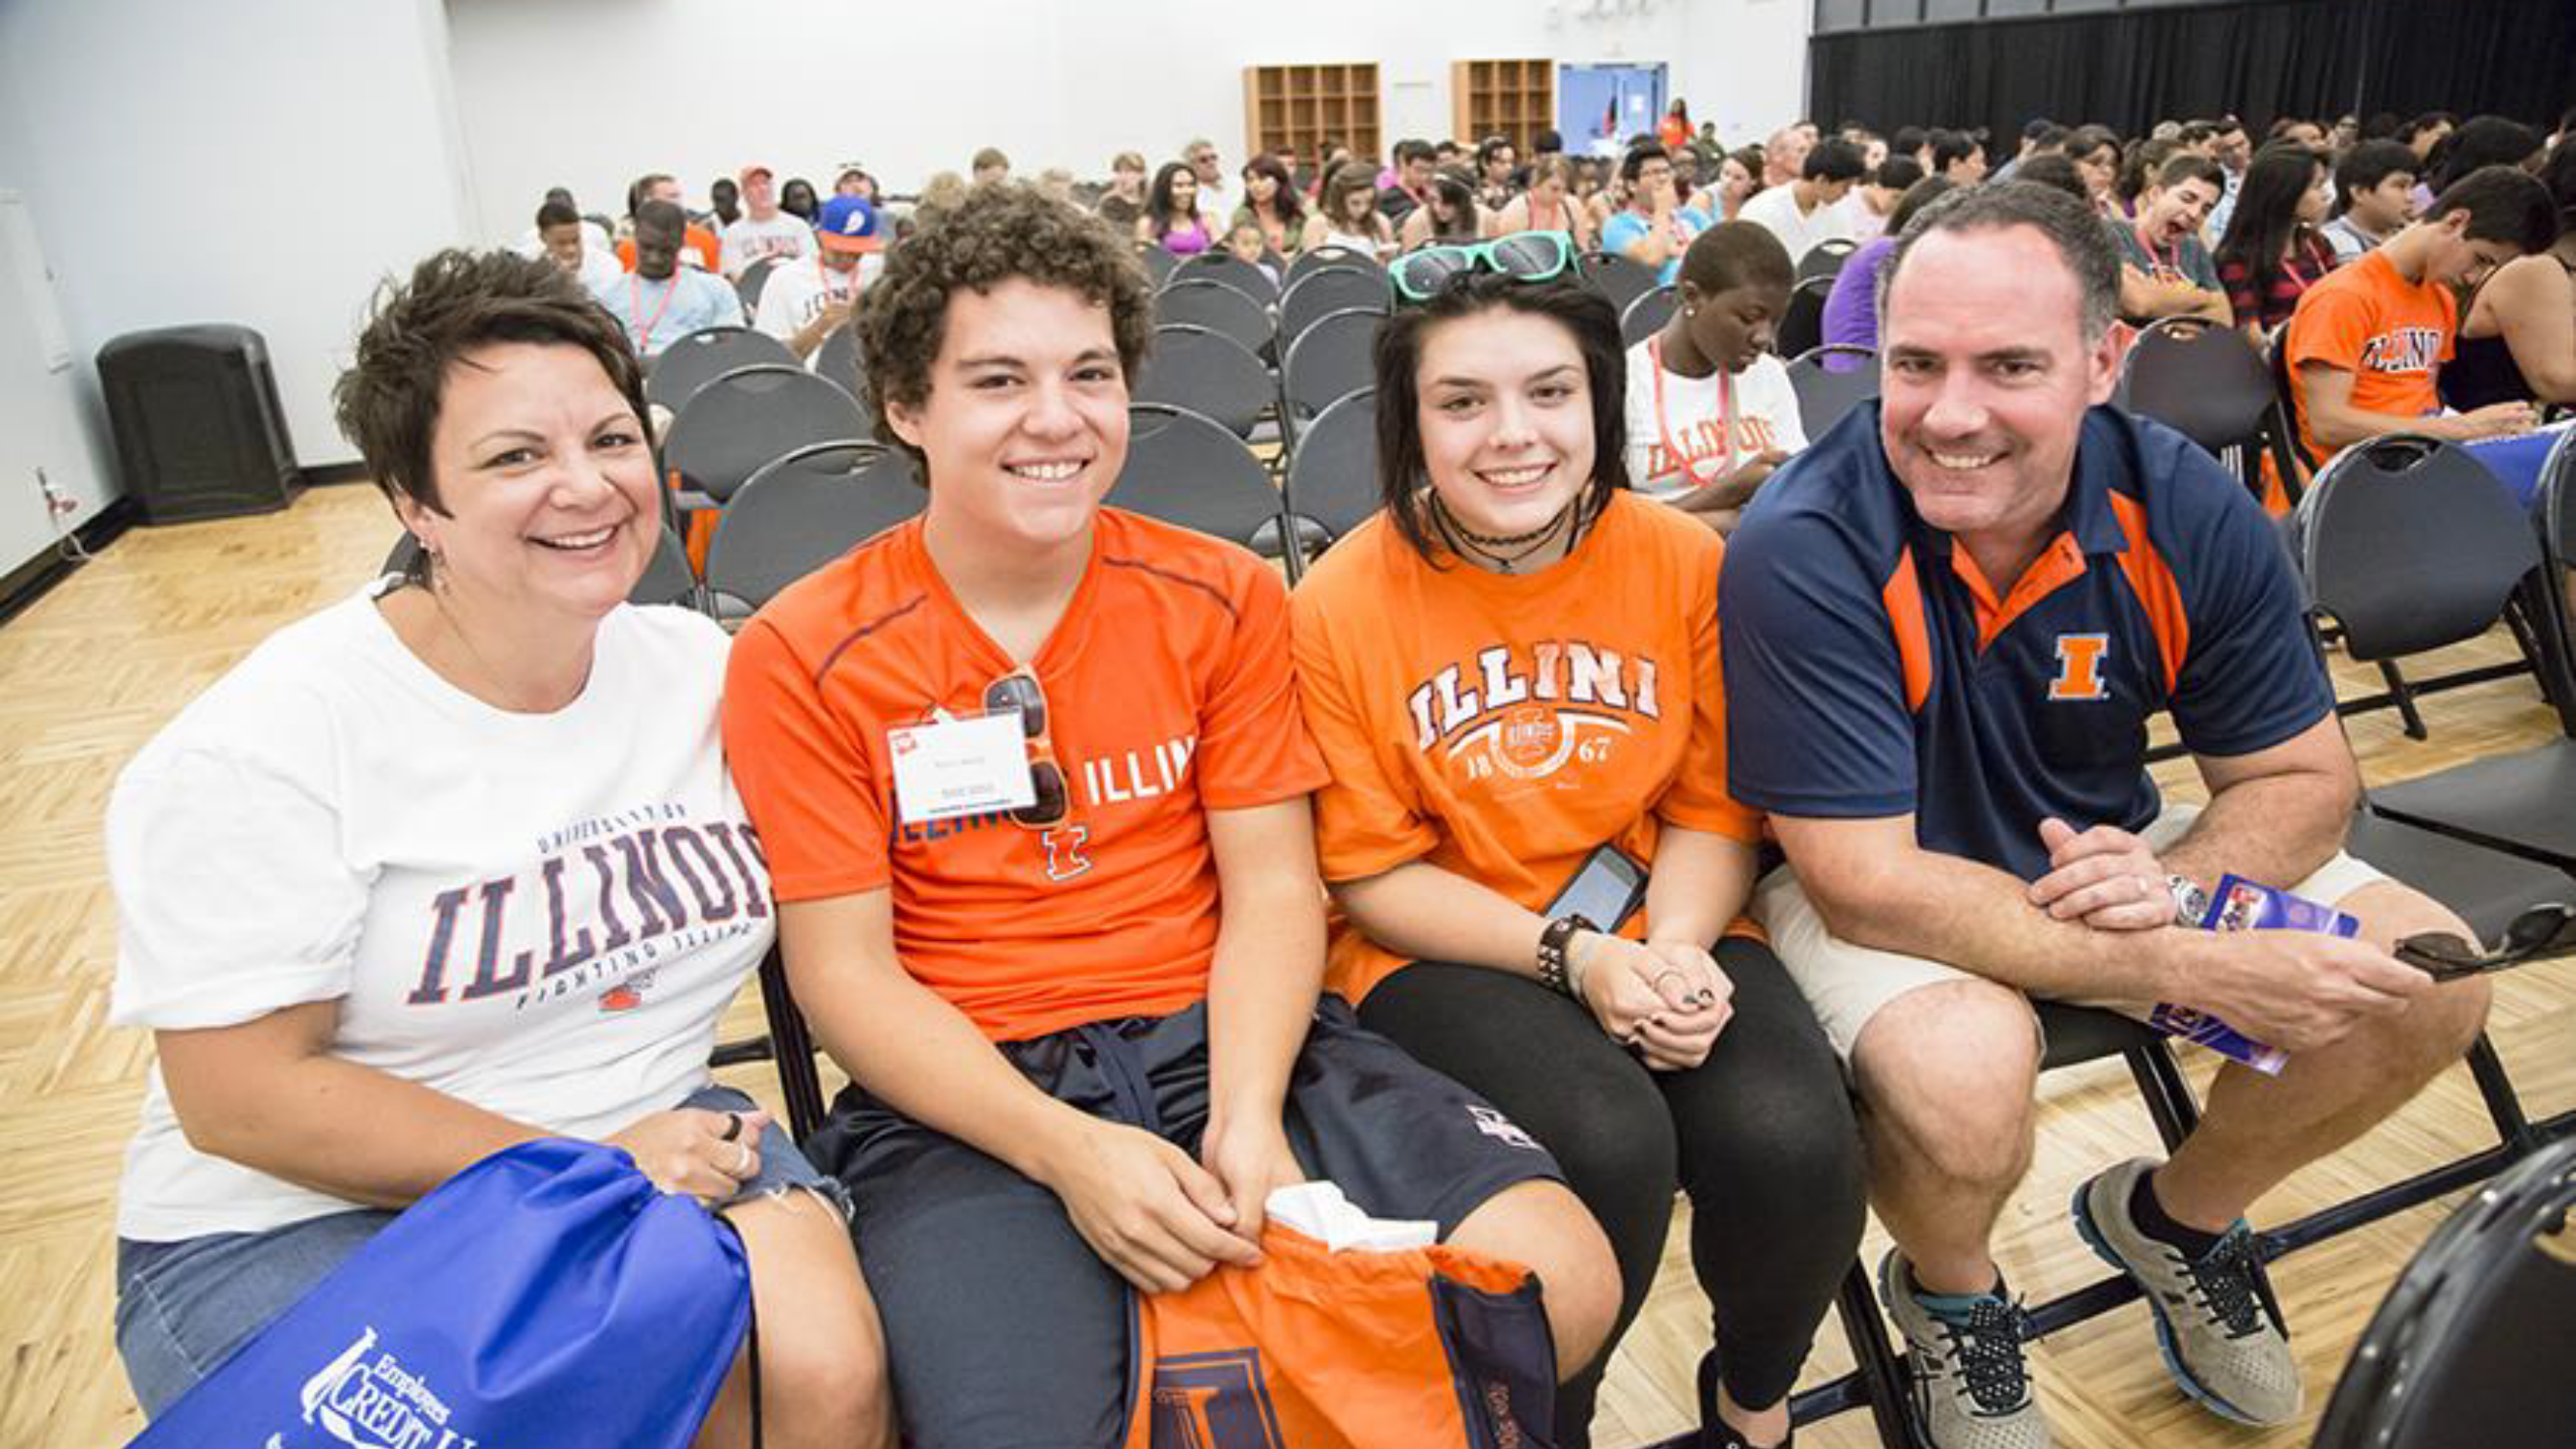 Family at New Student Programs Event